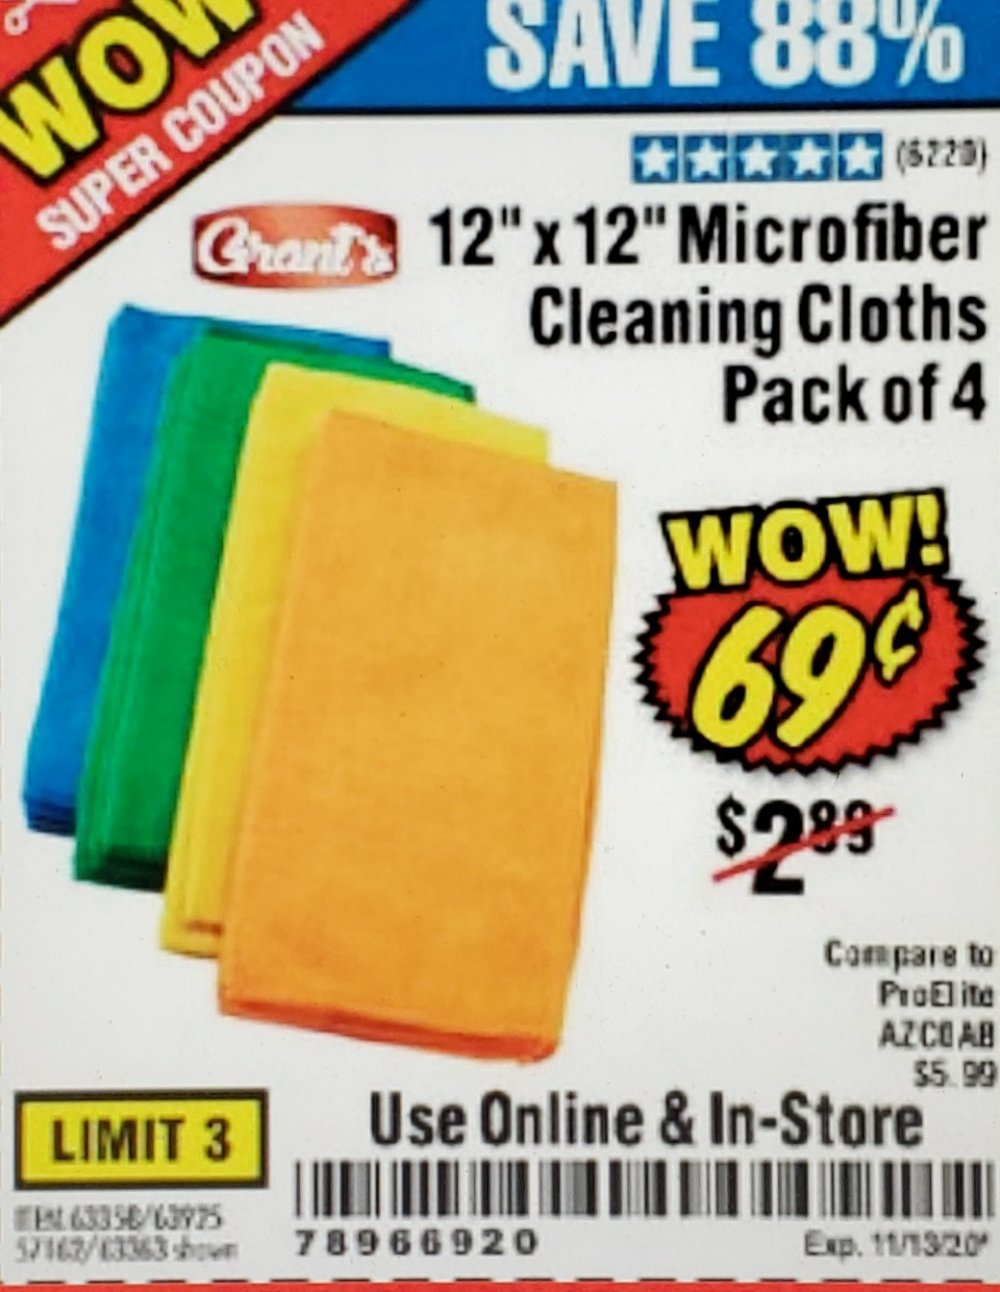 Harbor Freight Coupon, HF Coupons - WOW Super Coupon! 69� Microfiber Cleaning Cloths